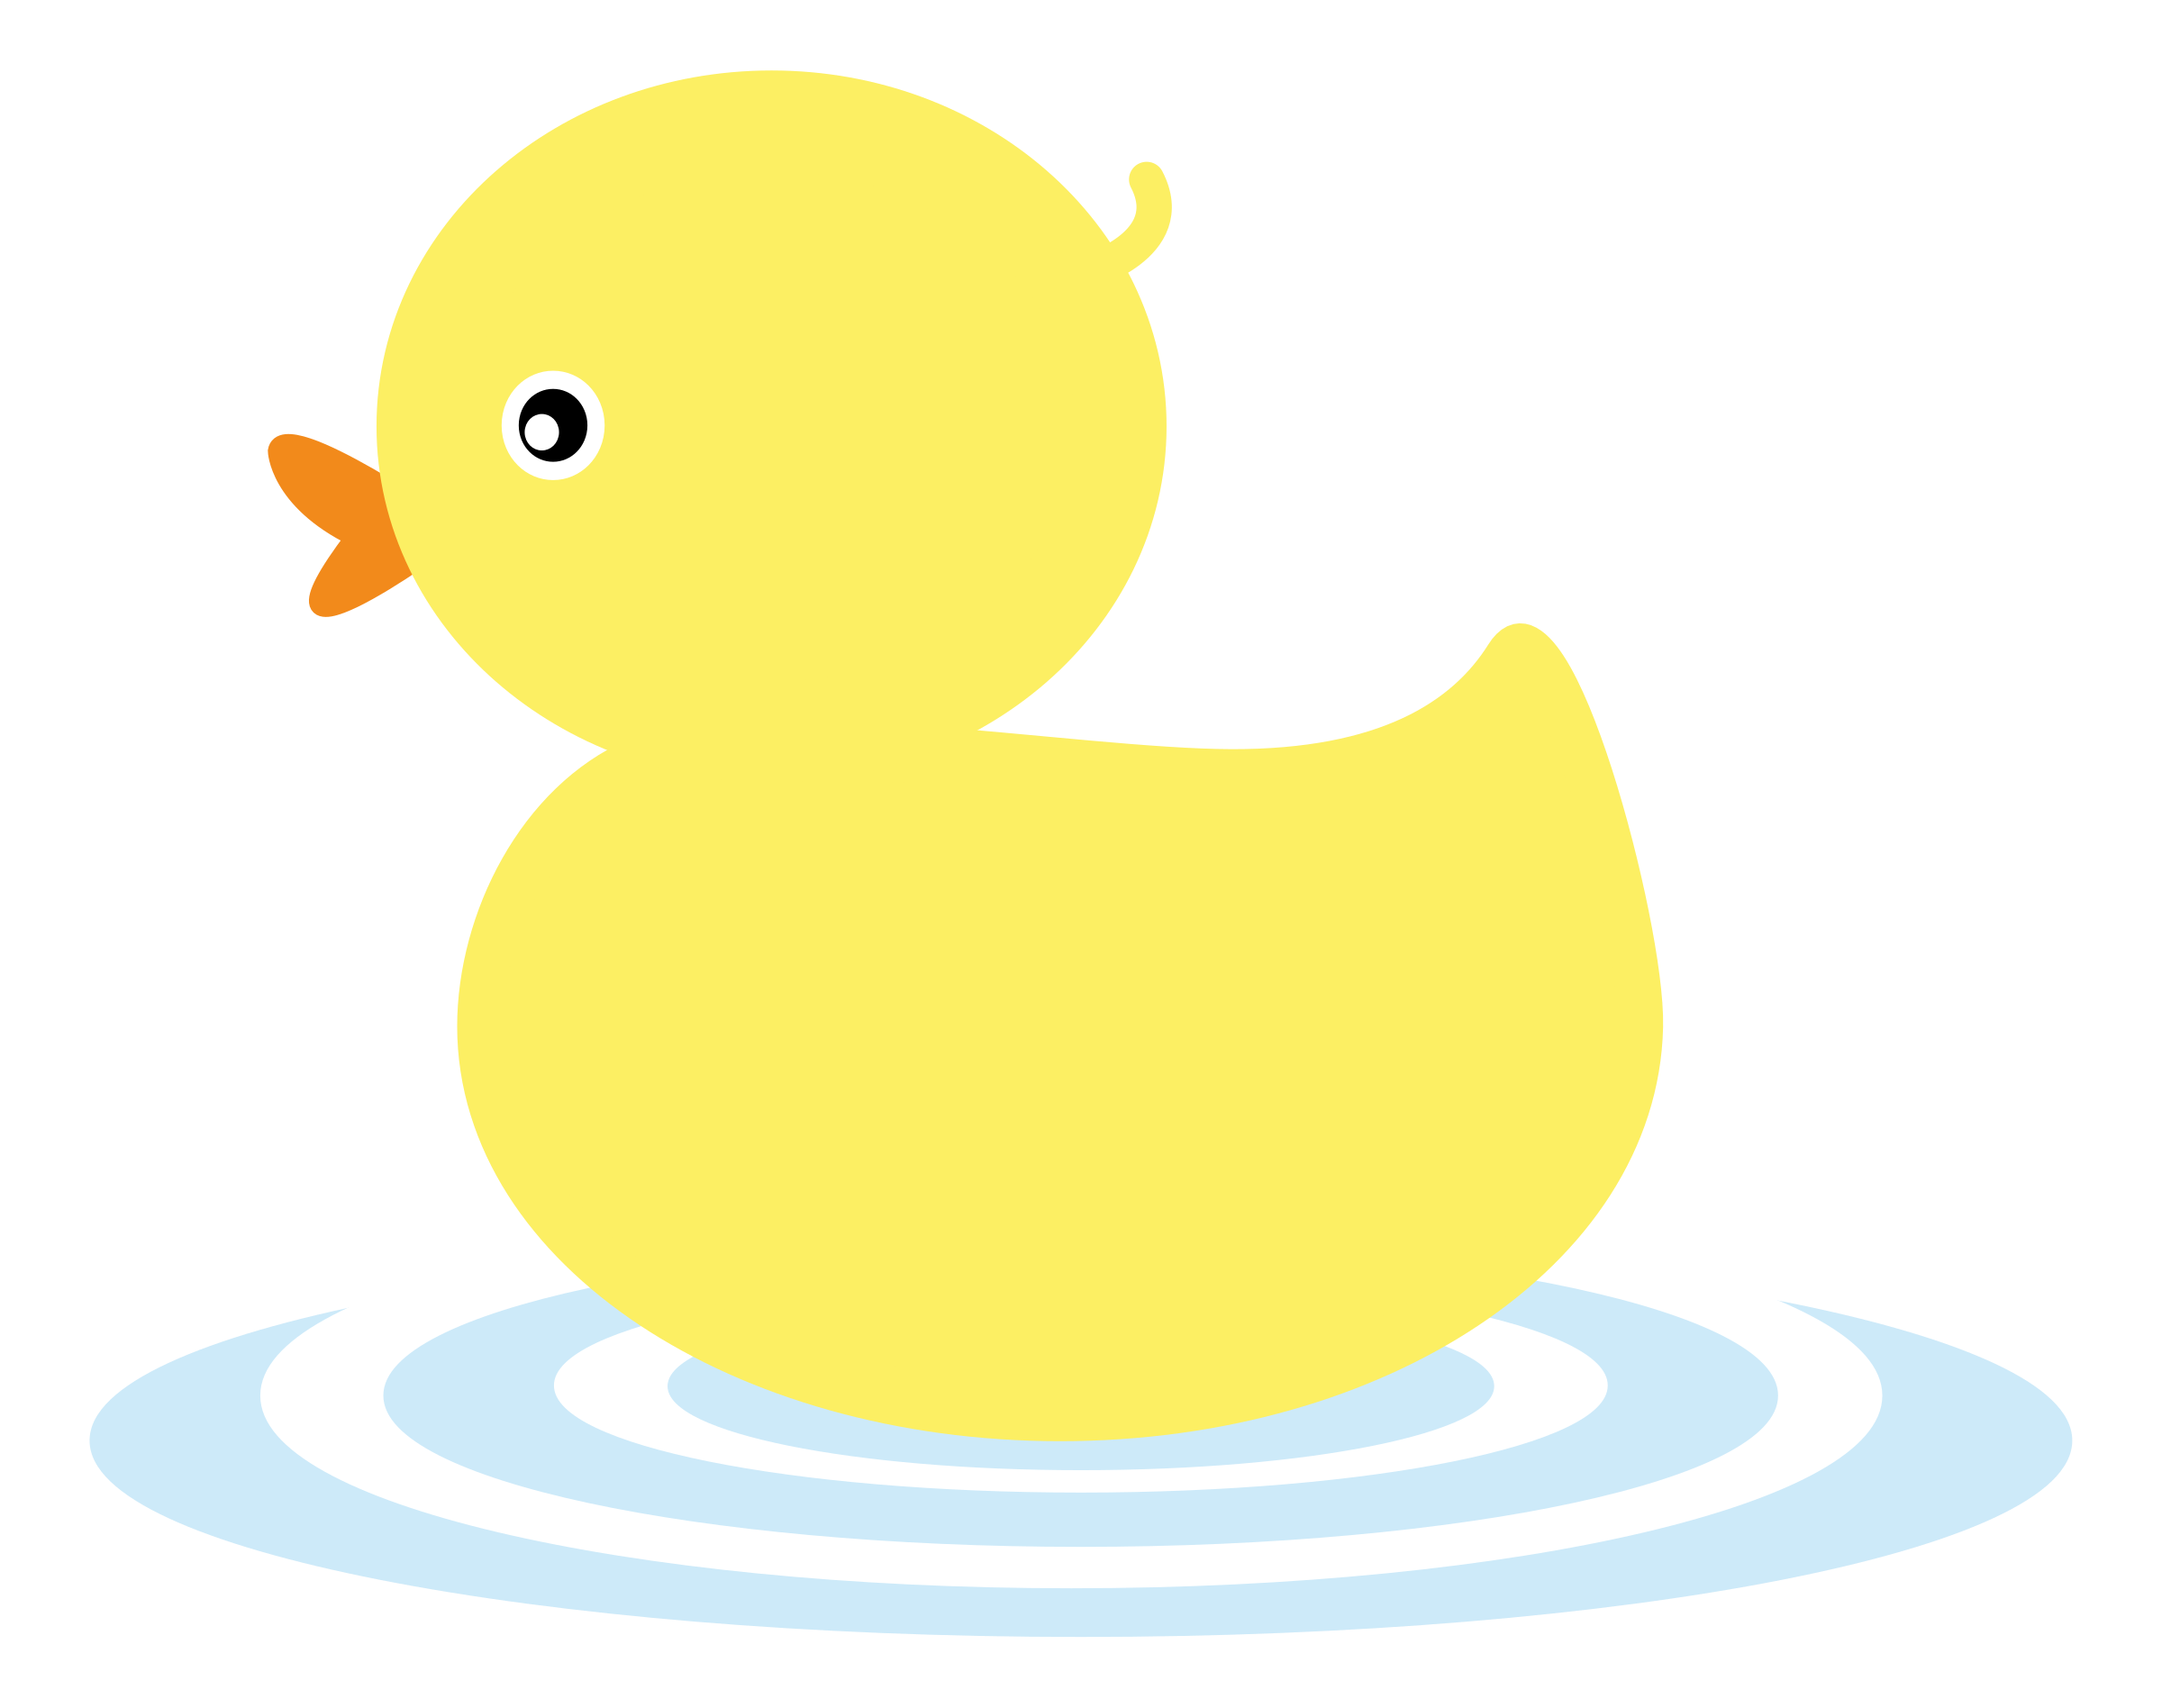 Free download best on. Ducks clipart lake clipart